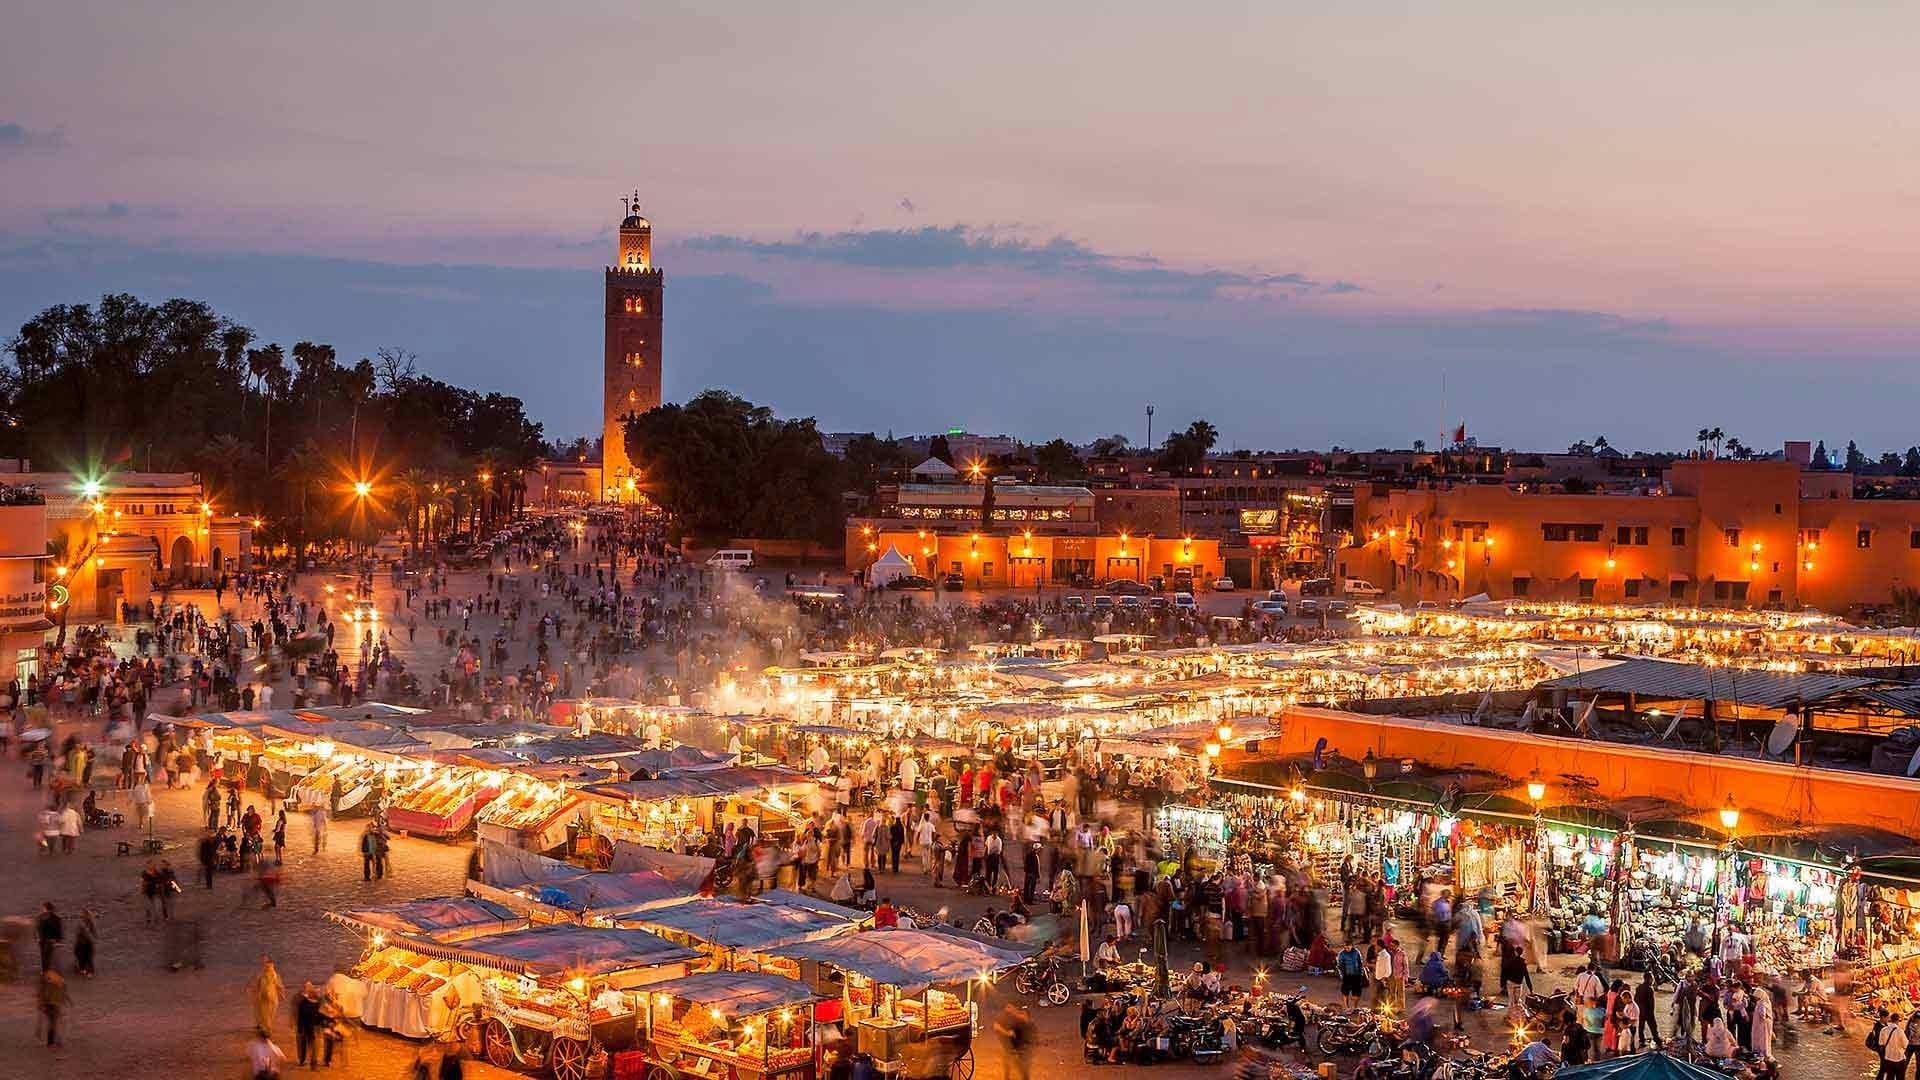 pathfinders treks - marrakech to fes via sahara desert 3 days